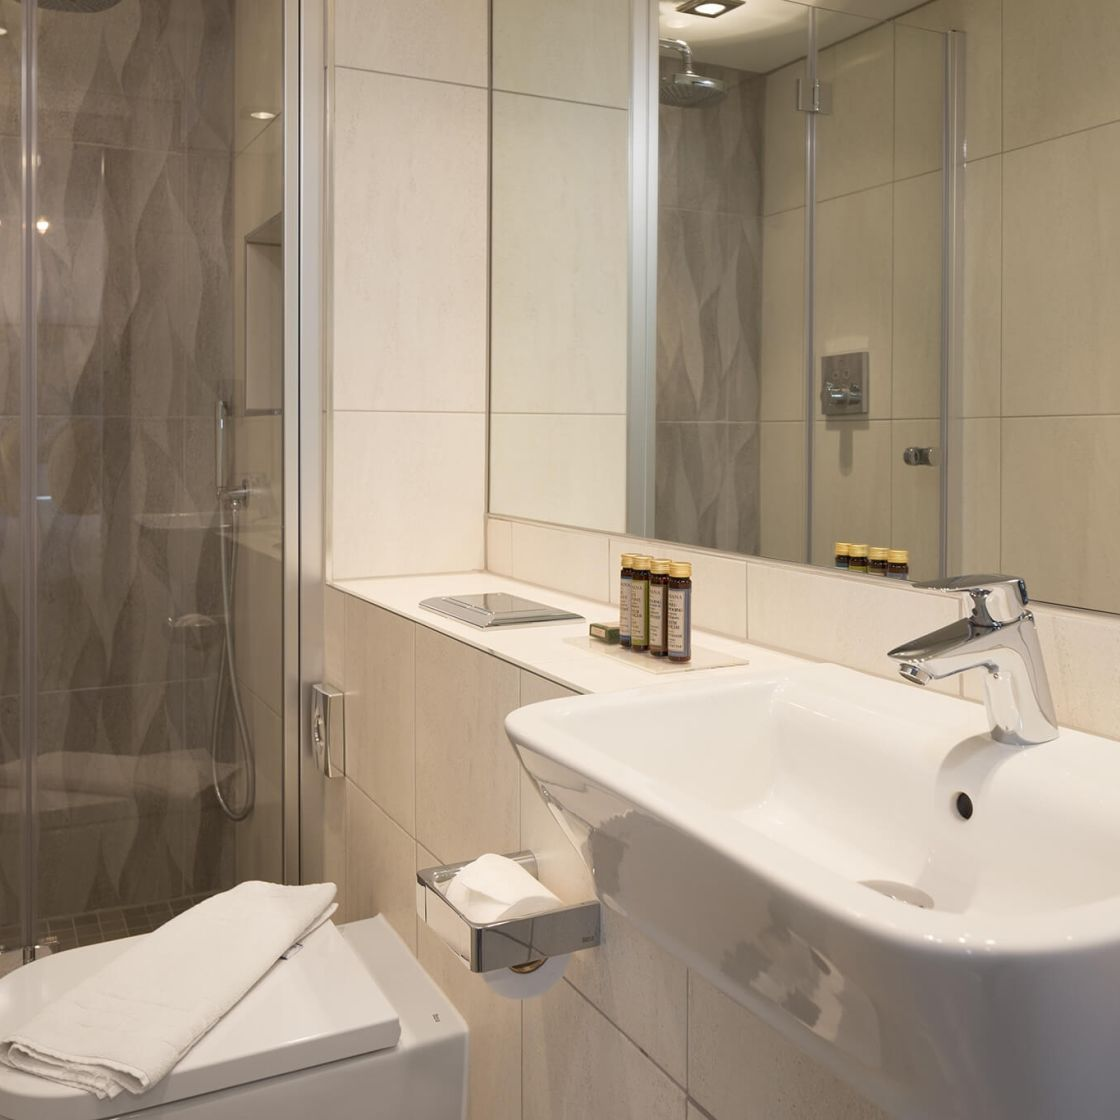 Studio Student Apartment in Manchester. En-suite with Rainfall Shower. IconInc @ Roomzzz